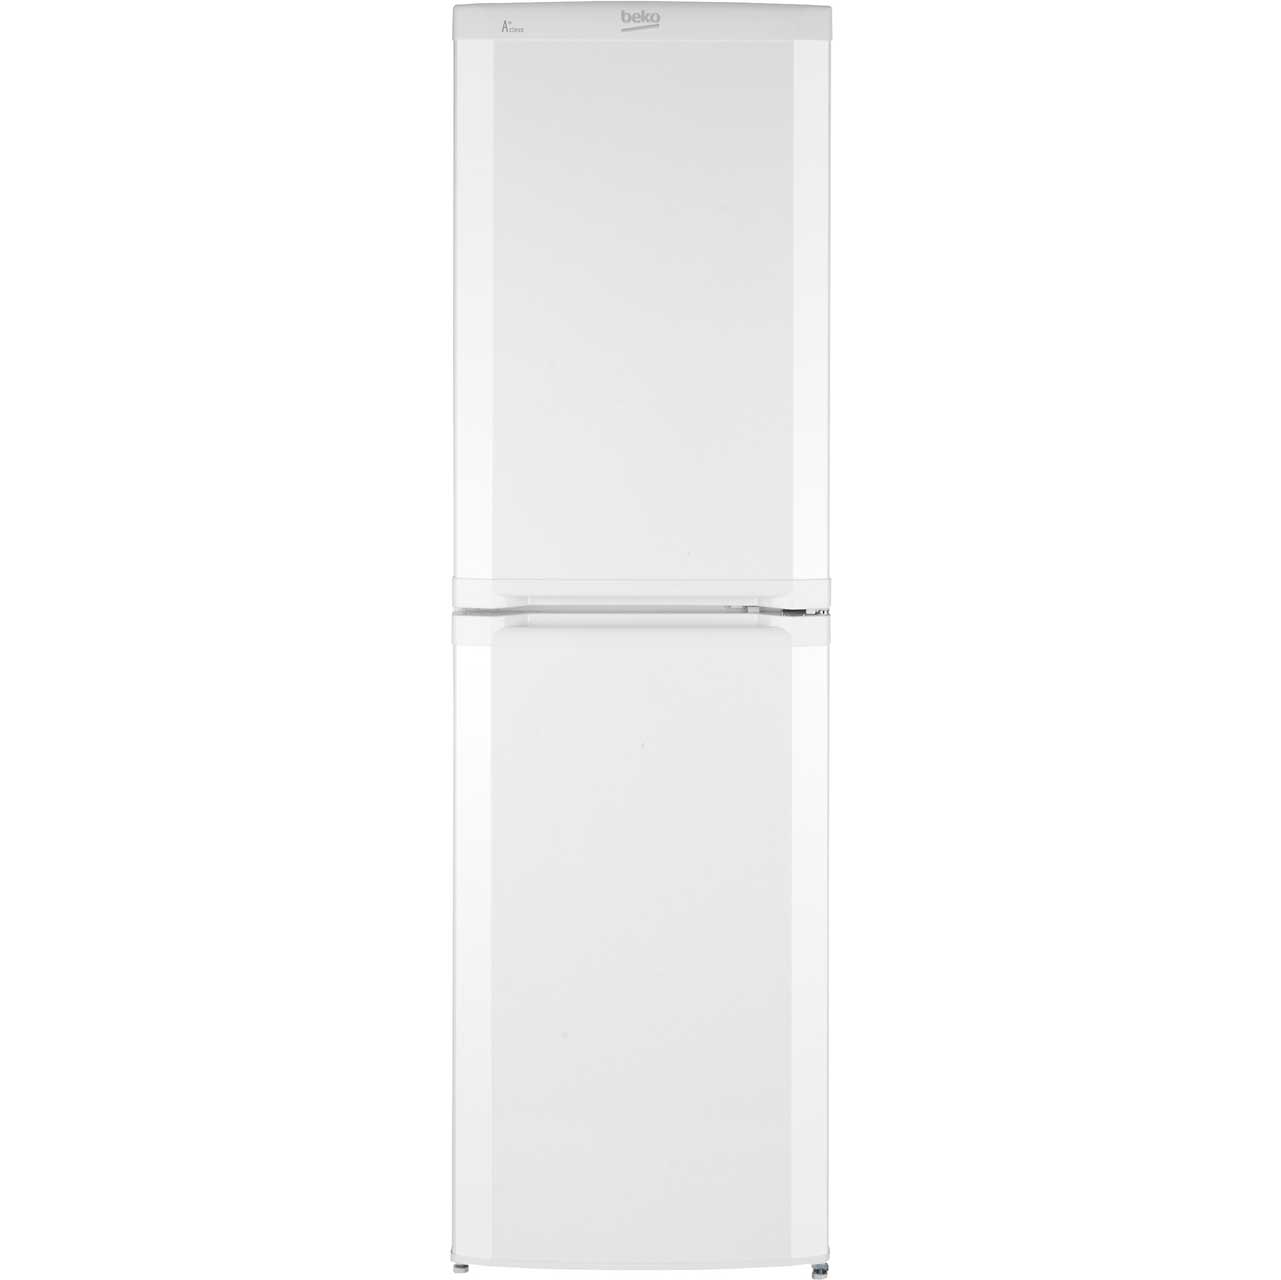 Beko CS5824W Free Standing Fridge Freezer in White